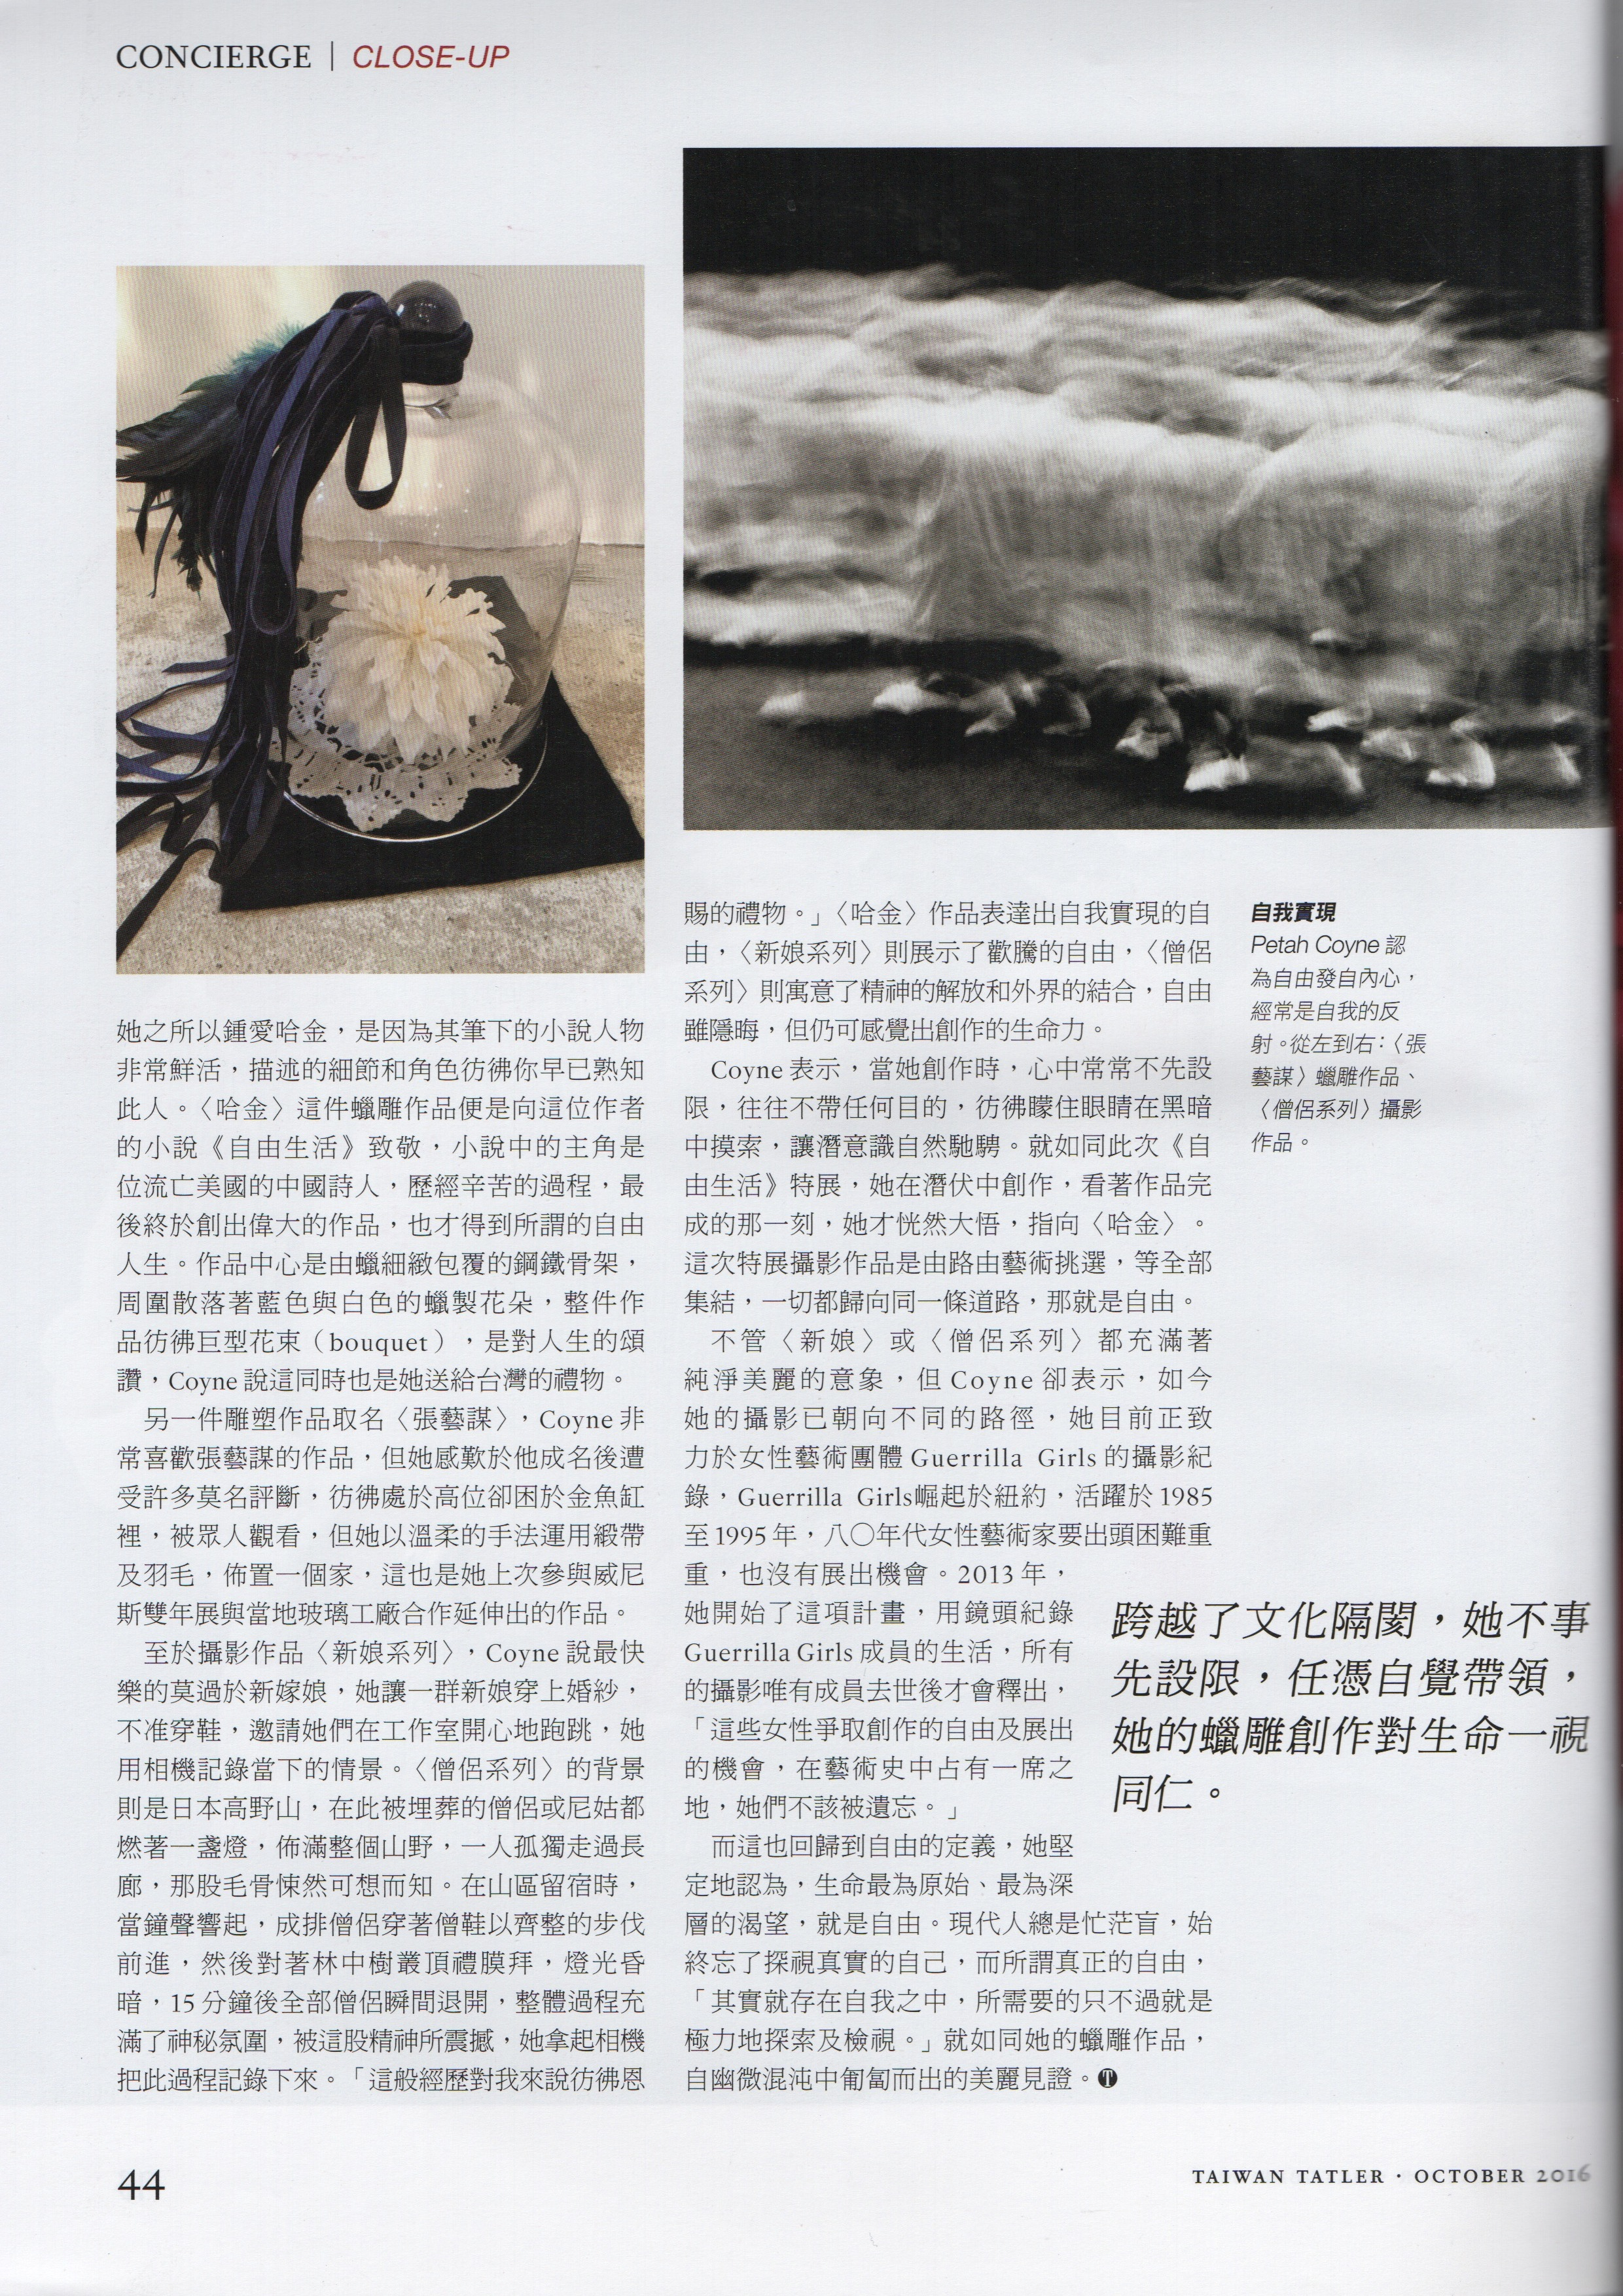 PC_AFreeLife_Taiwan Tatler3.jpeg